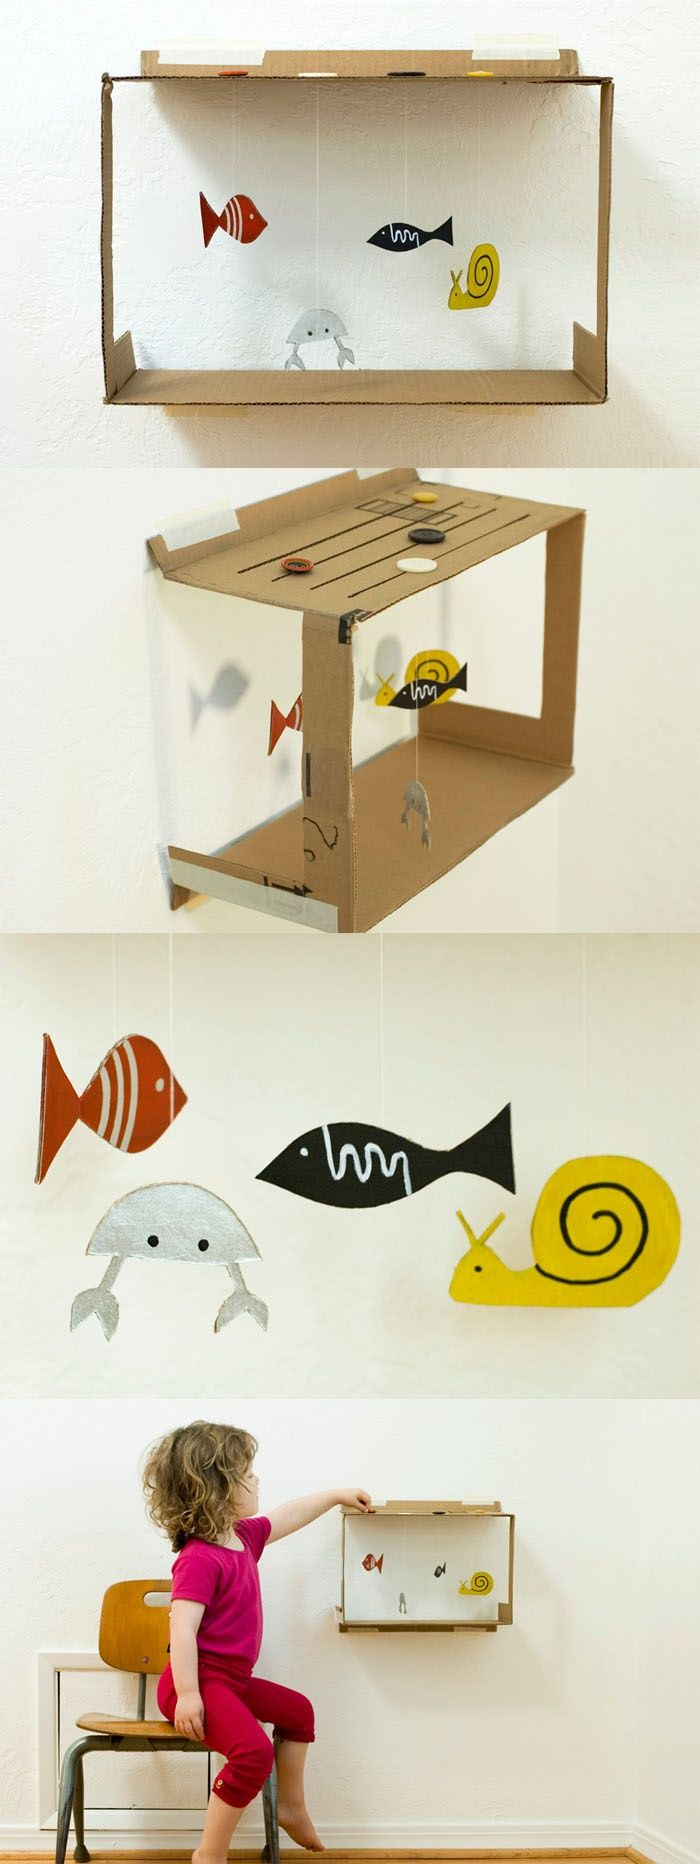 Diy fish tank- made from cardboard, buttons, paint and a little imagination- could switch this up a little and make a zoo or a farm.....whatever ur little one is into.